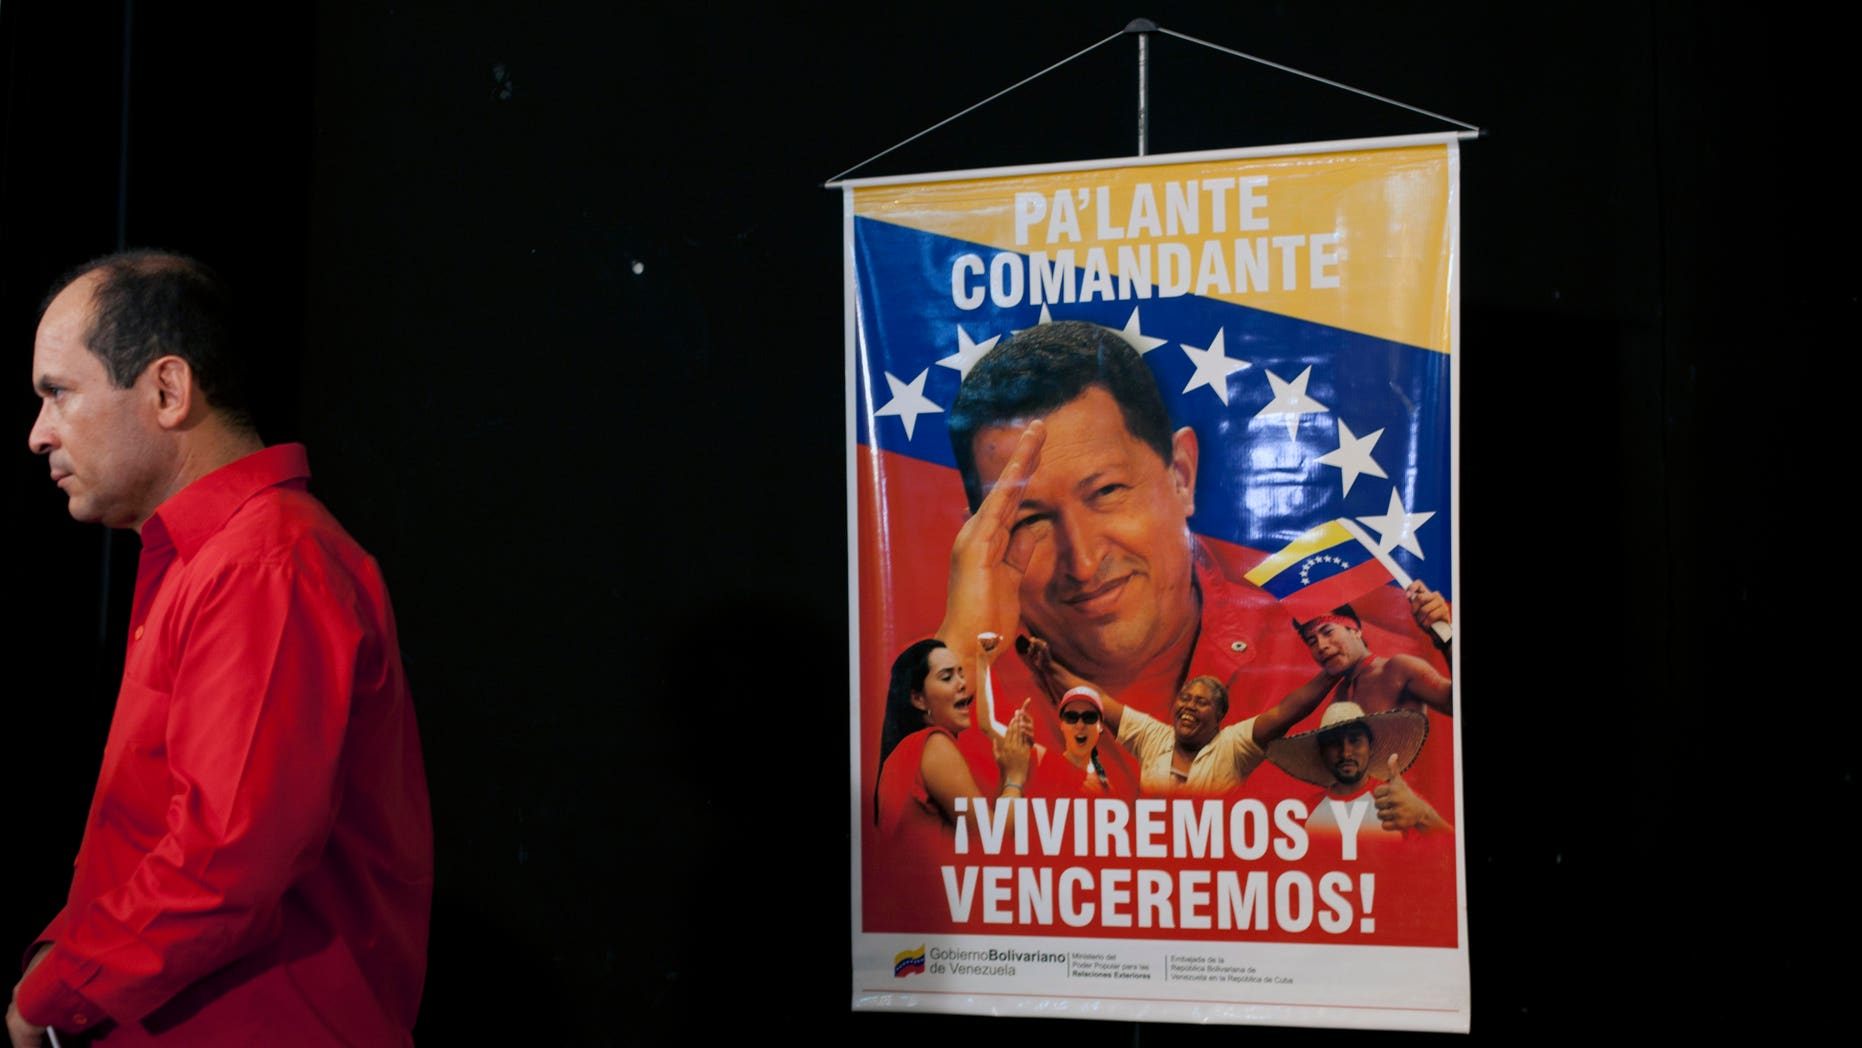 """A poster of Venezuela's President Hugo Chavez that reads """"Move forward commander, we will live and overcome"""" hangs as Venezuela's ambassador to Cuba Edgardo Antonio Ramirez stands by after a press conference by Cuban artists and intellectuals to show support for Chavez in Havana, Cuba, Monday, Jan. 7, 2013. Chavez hasn't spoken or appeared publicly since his Dec. 11 operation in Cuba, his fourth surgery for an undisclosed type of pelvic cancer. Speculation about the leader's condition has grown since the operation. (AP Photo/Ramon Espinosa)"""